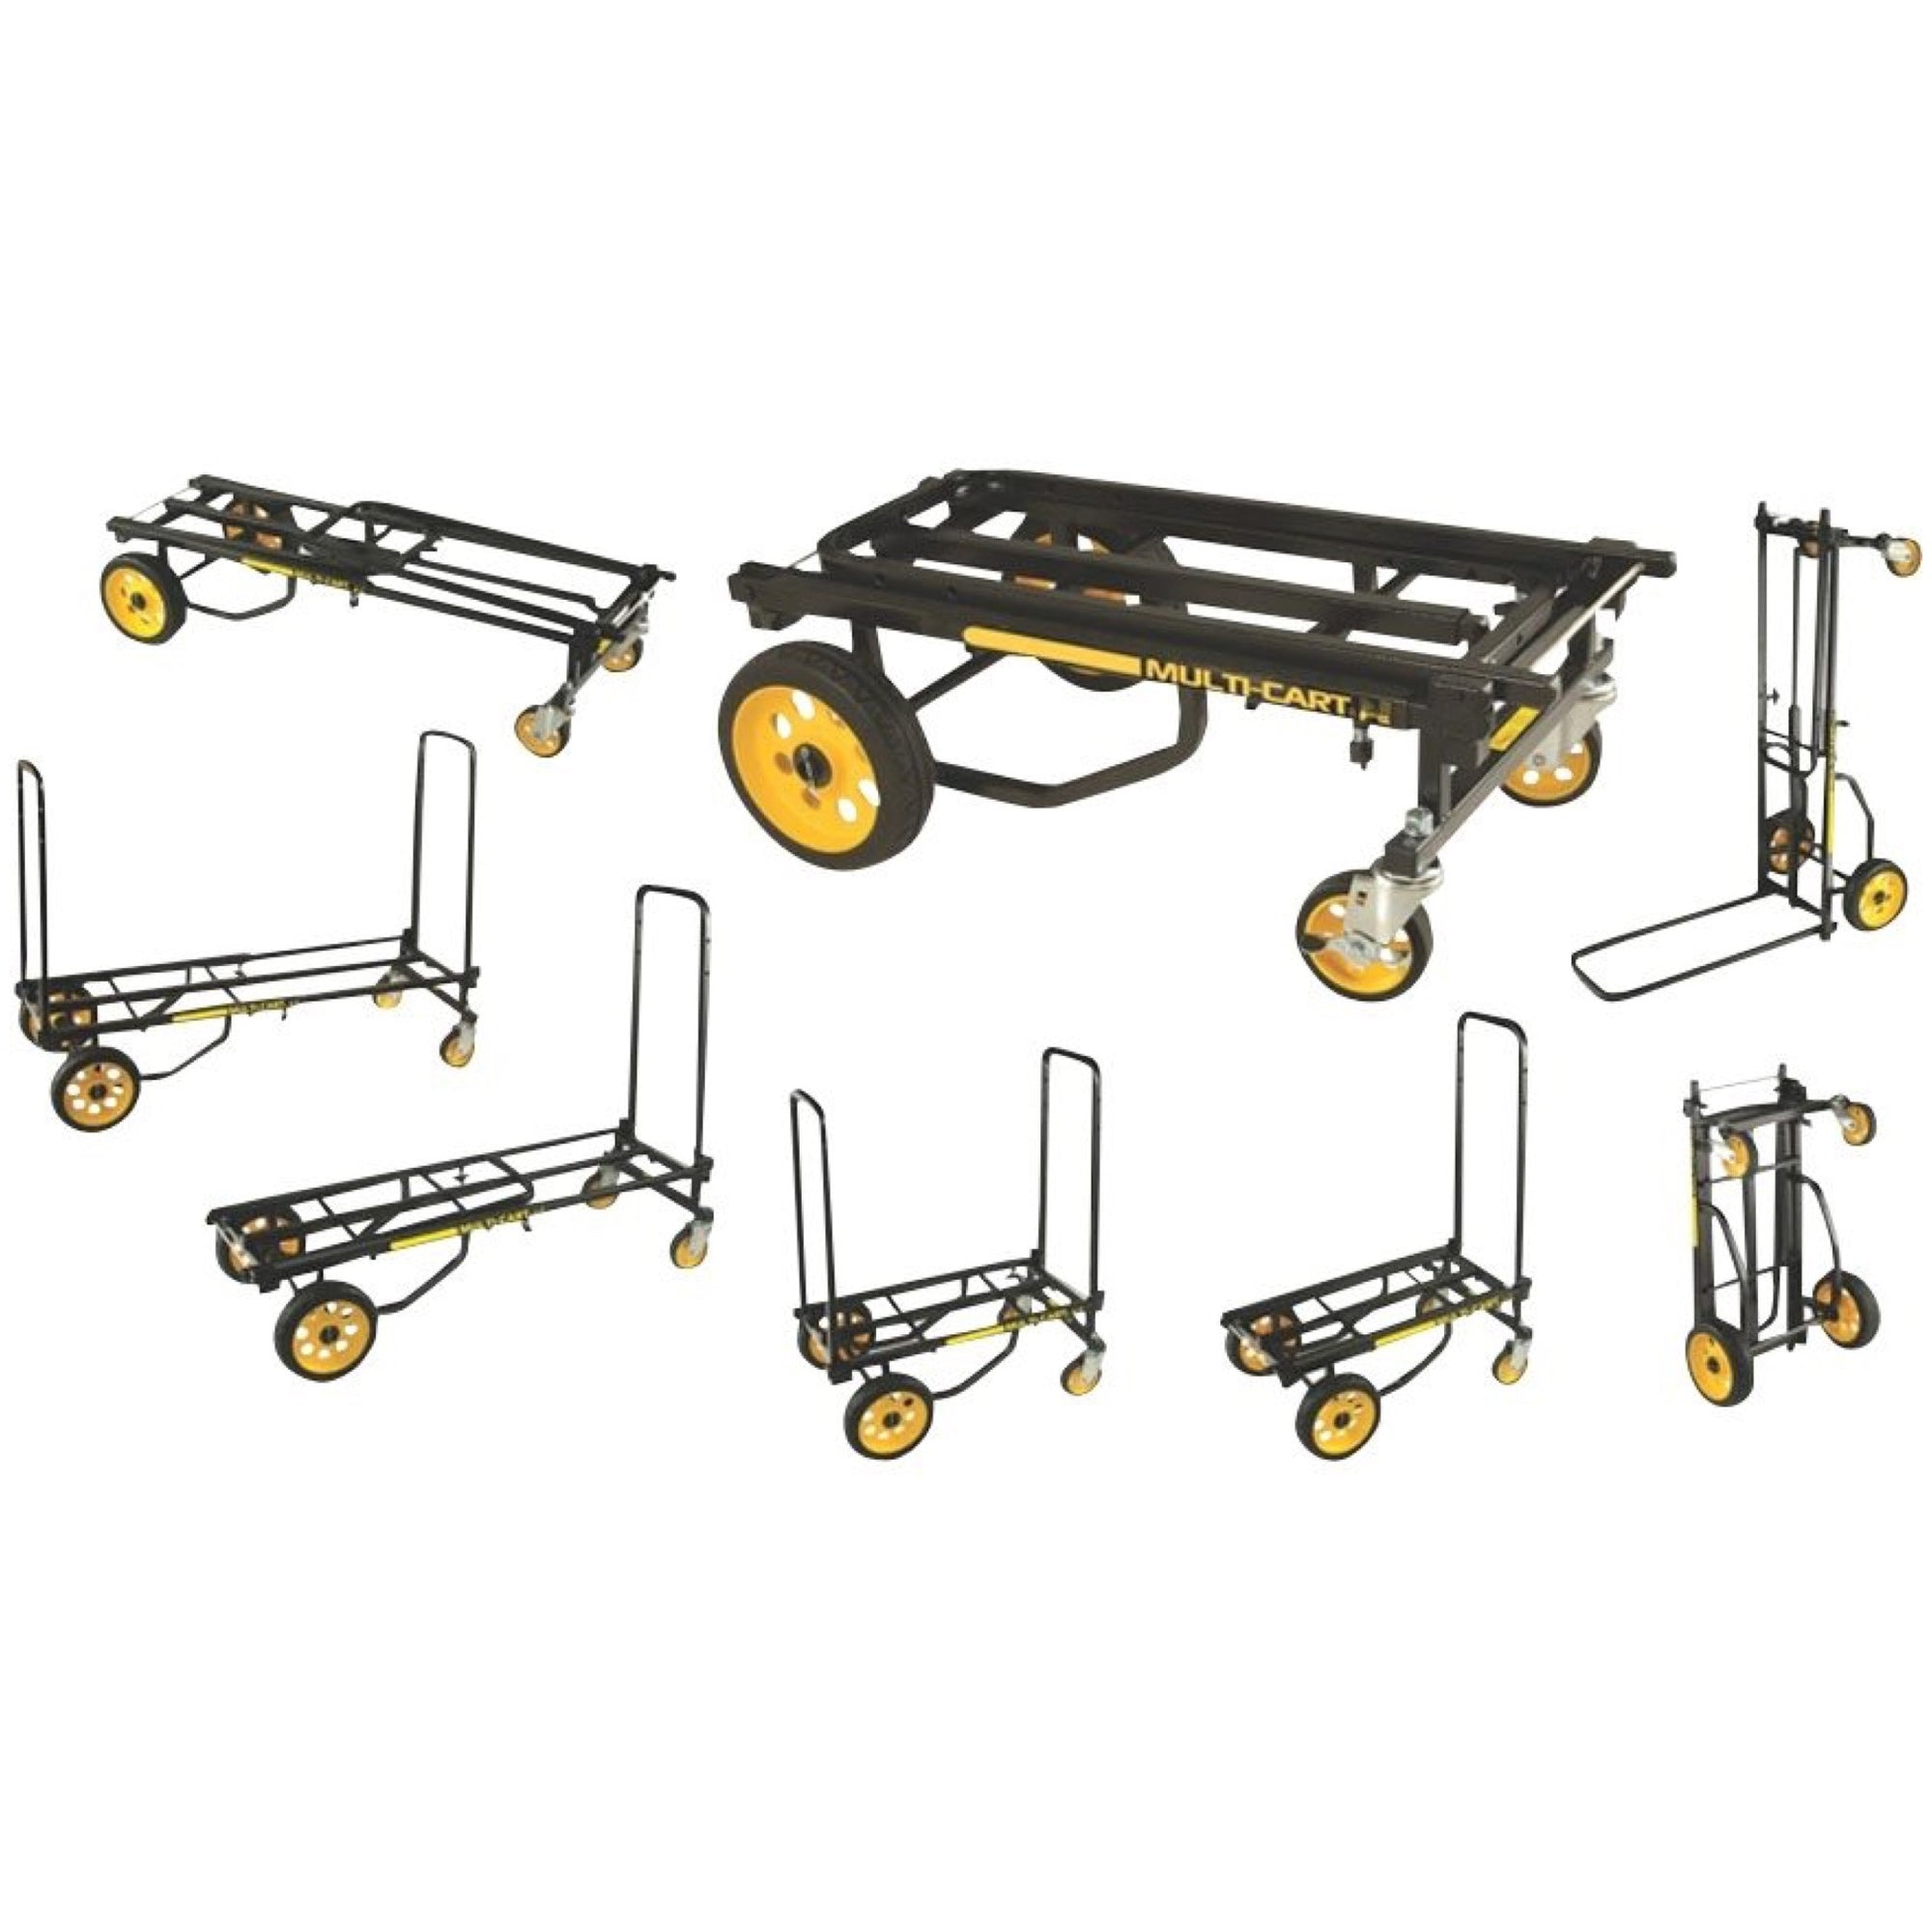 RocknRoller Multi-Cart Equipment Cart with R-Trac Wheels, R8RT